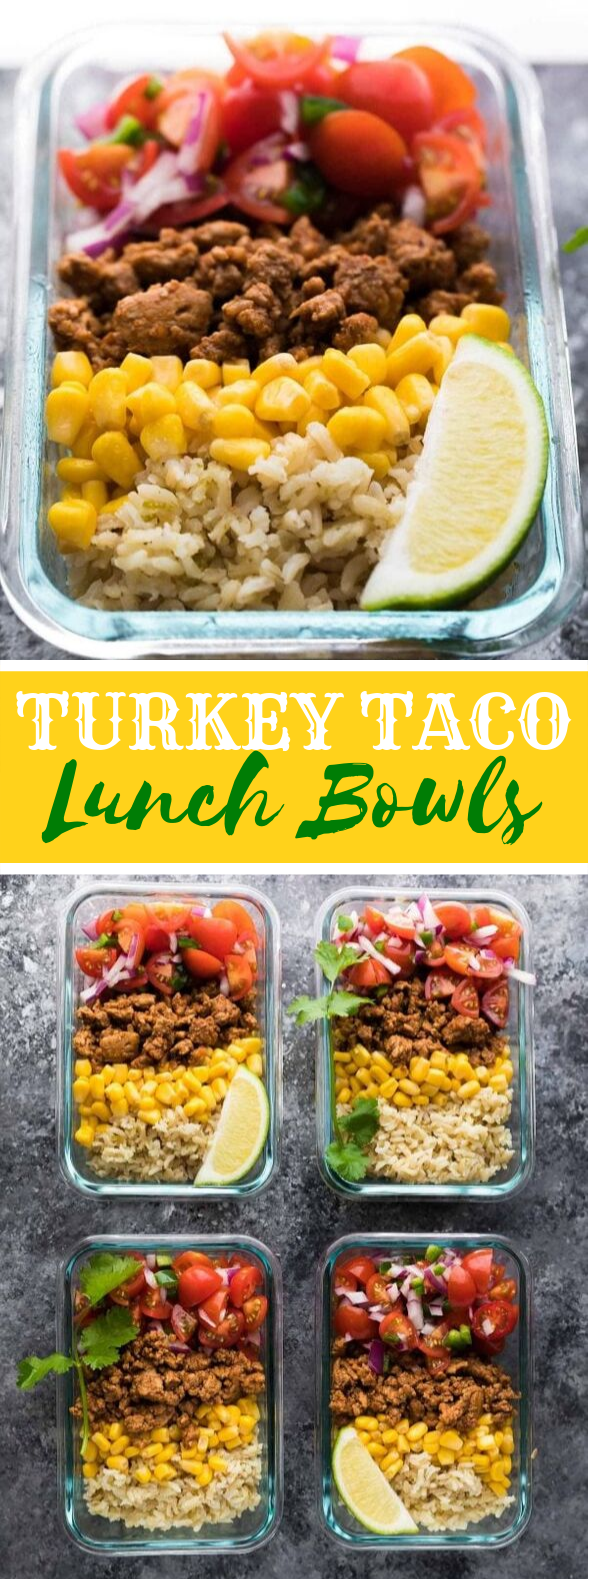 Turkey Taco Lunch Bowls (Meal Prep) #healthy #diet